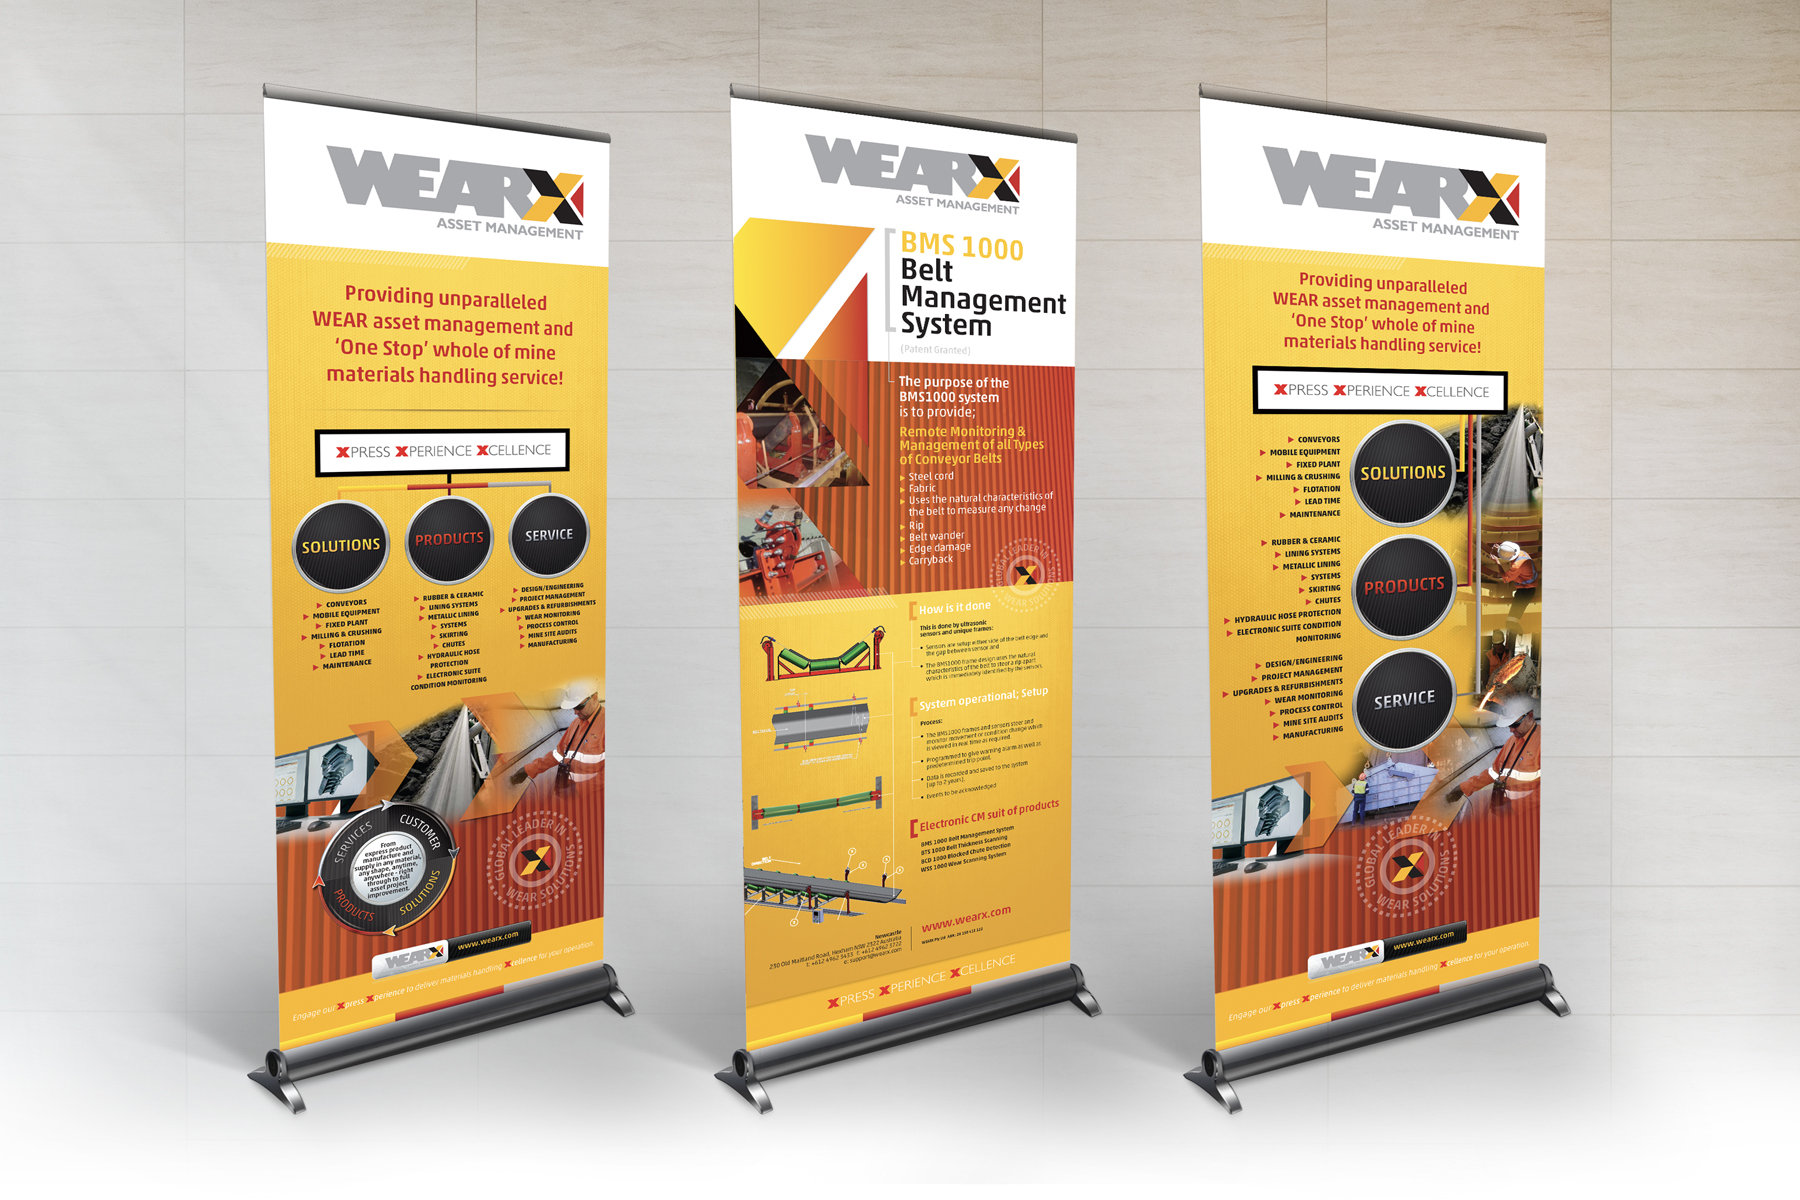 WEARX Pull-up Banners showing BMS and Branding